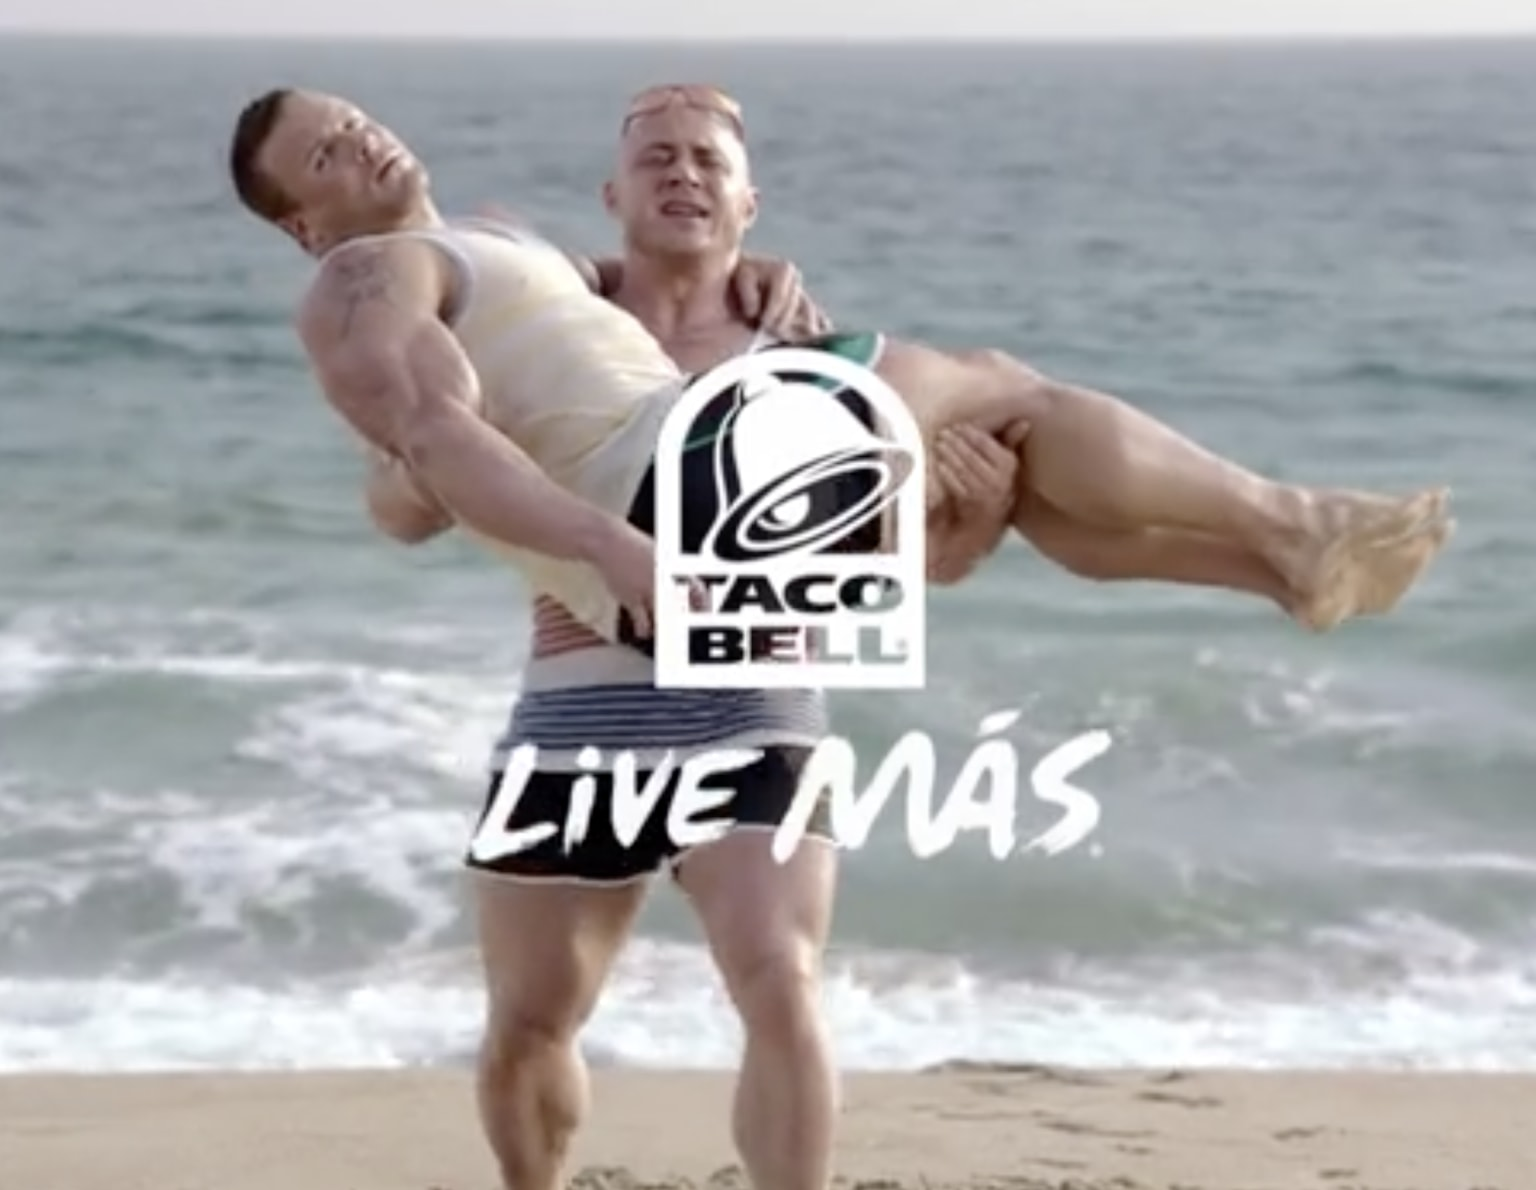 Get This Man Some Protein - Taco Bell